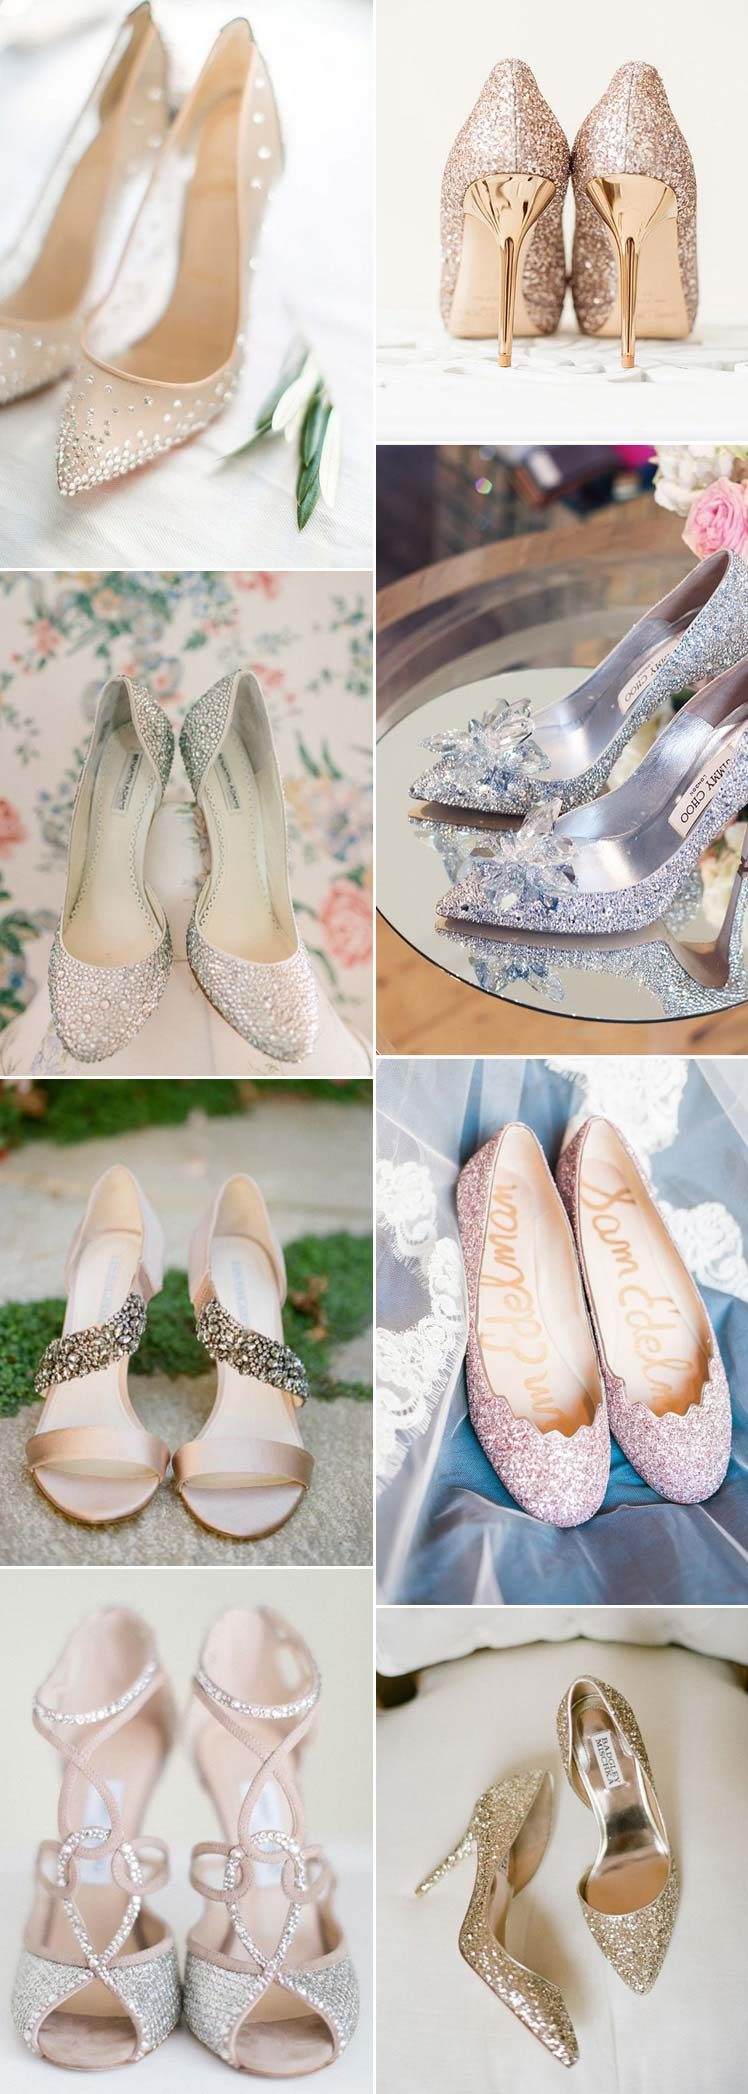 beautifully stylish sparkly shoes